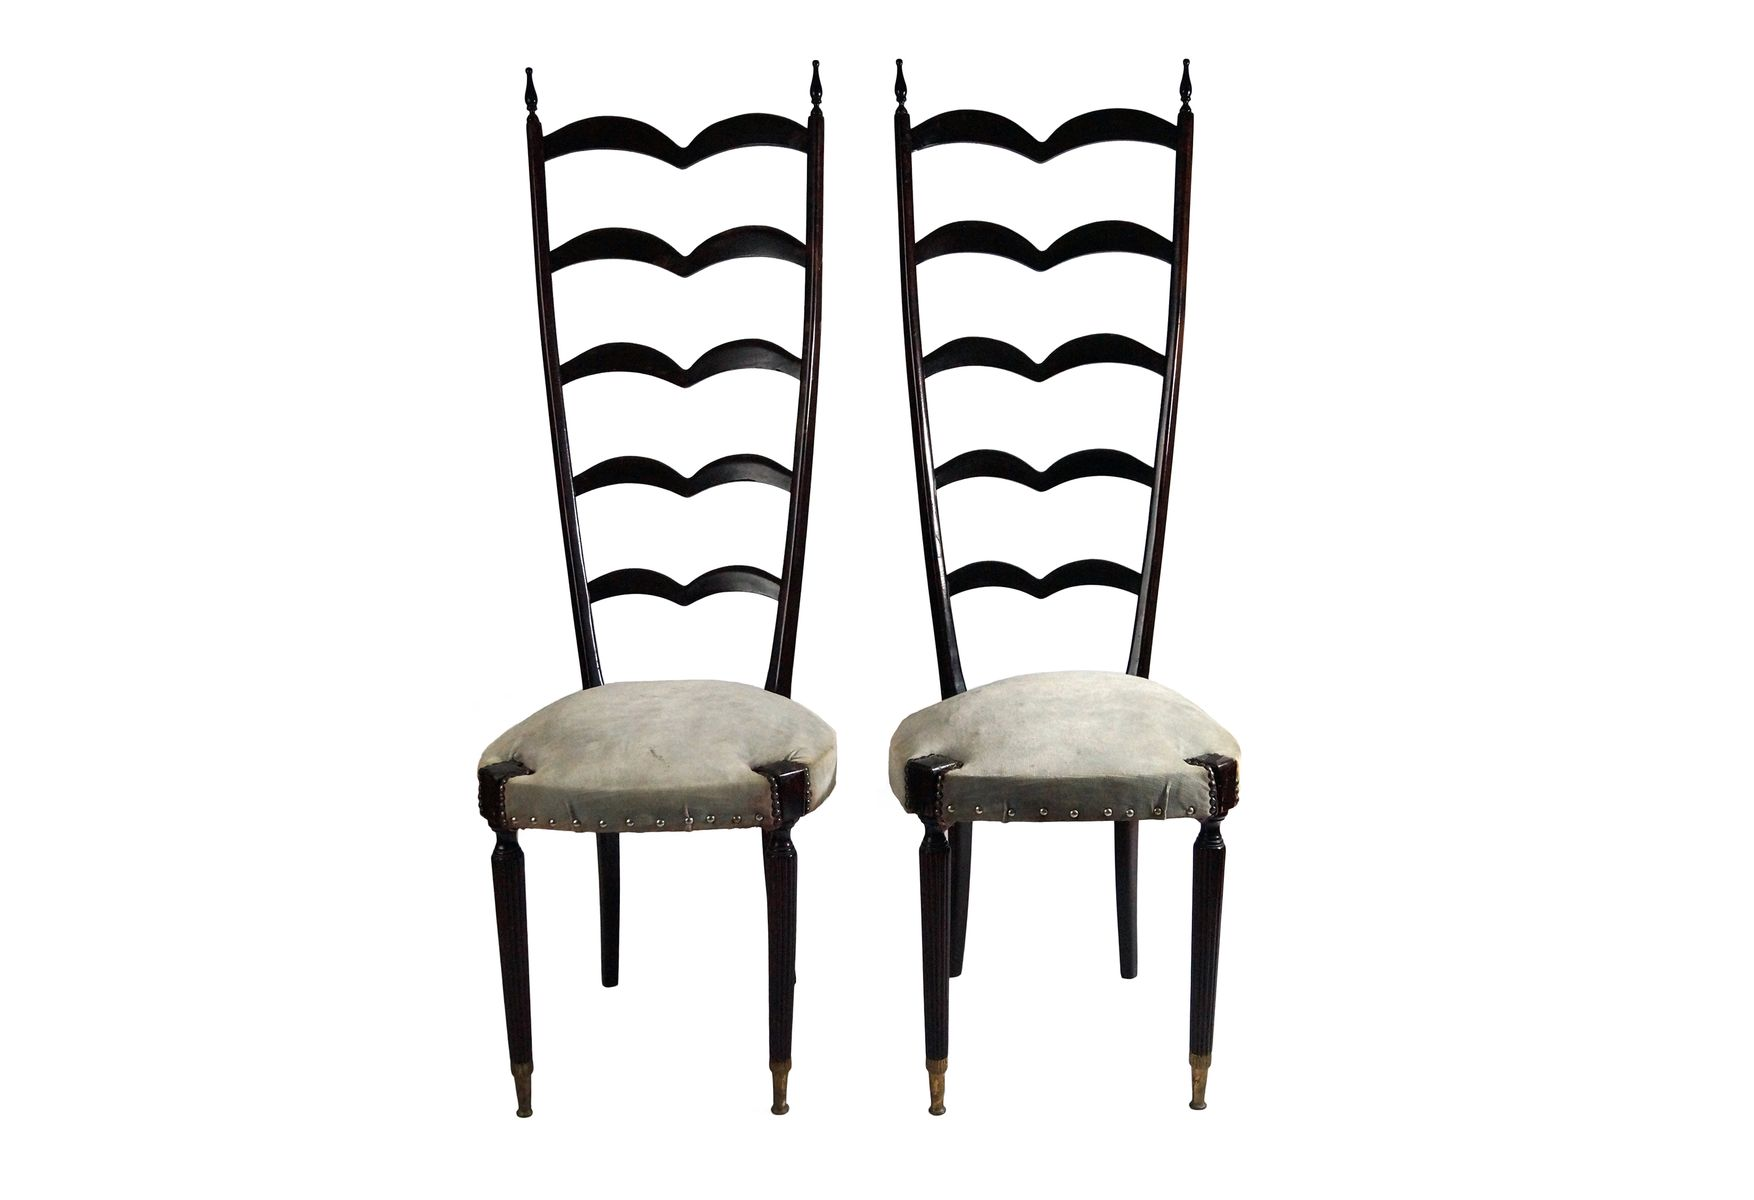 Modern Ladder Back Chairs by Paolo Buffa 1950s Set of 2 for sale